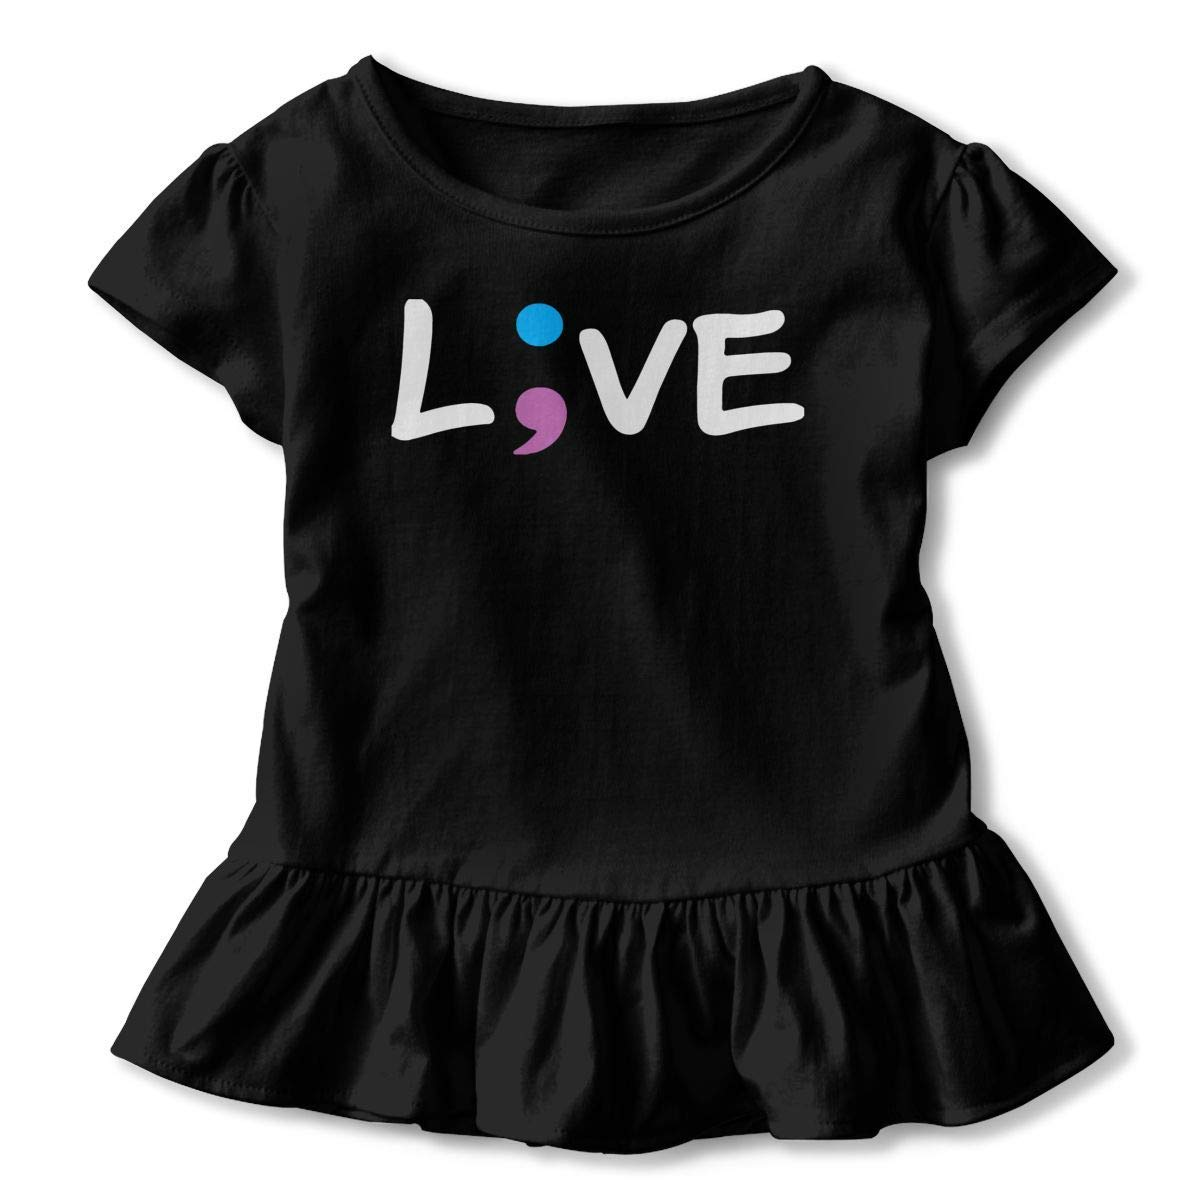 Casual Tunic Tops with Falbala 2-6T PMsunglasses Short-Sleeve Suicide Prevention Awareness Semicolon Live Shirts for Kids